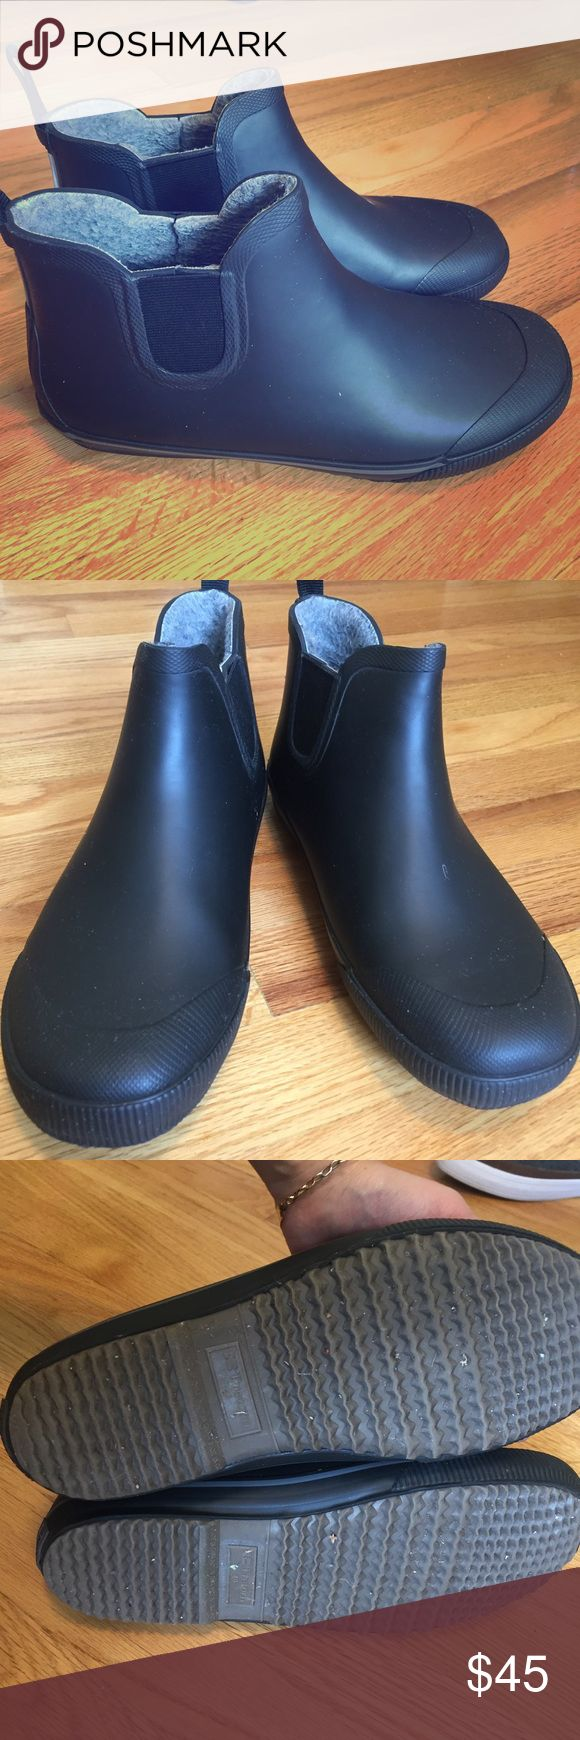 Men rain boots Great condition. Been worn a few times only. Very comfortable and great quality. Feel free to make me a reasonable offer treton Shoes Rain & Snow Boots